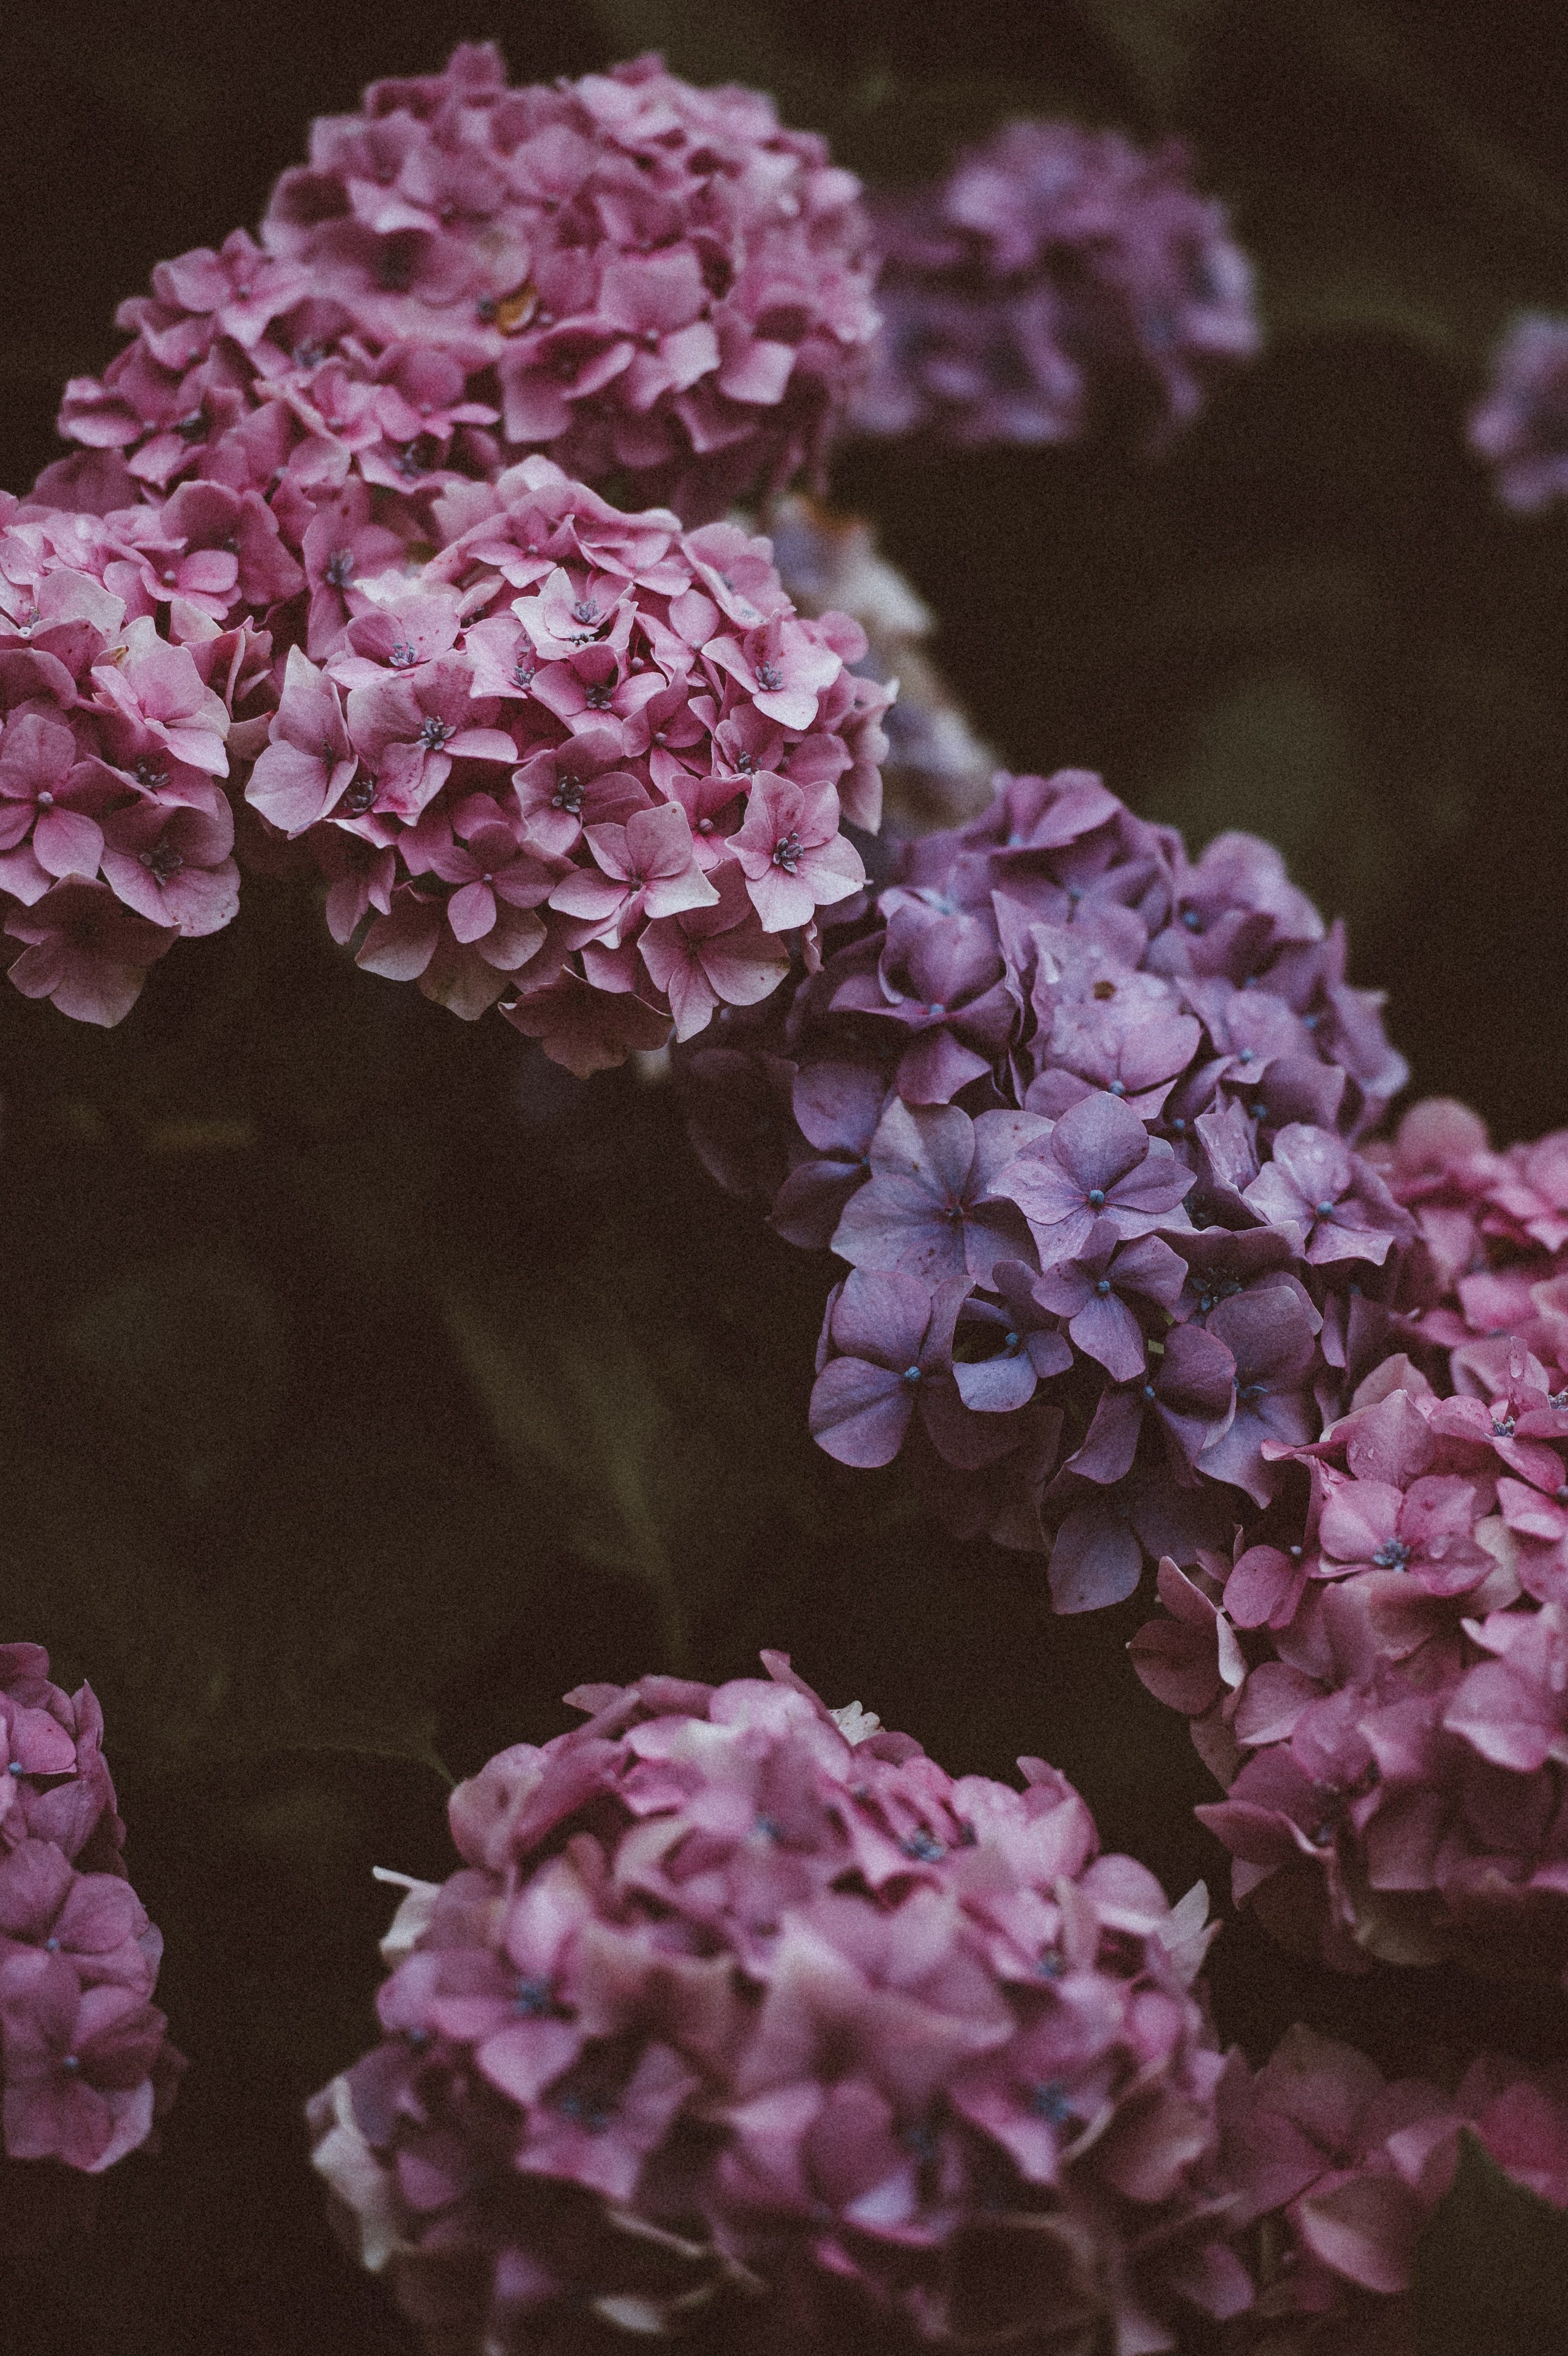 photo of pink and purple petaled flowers